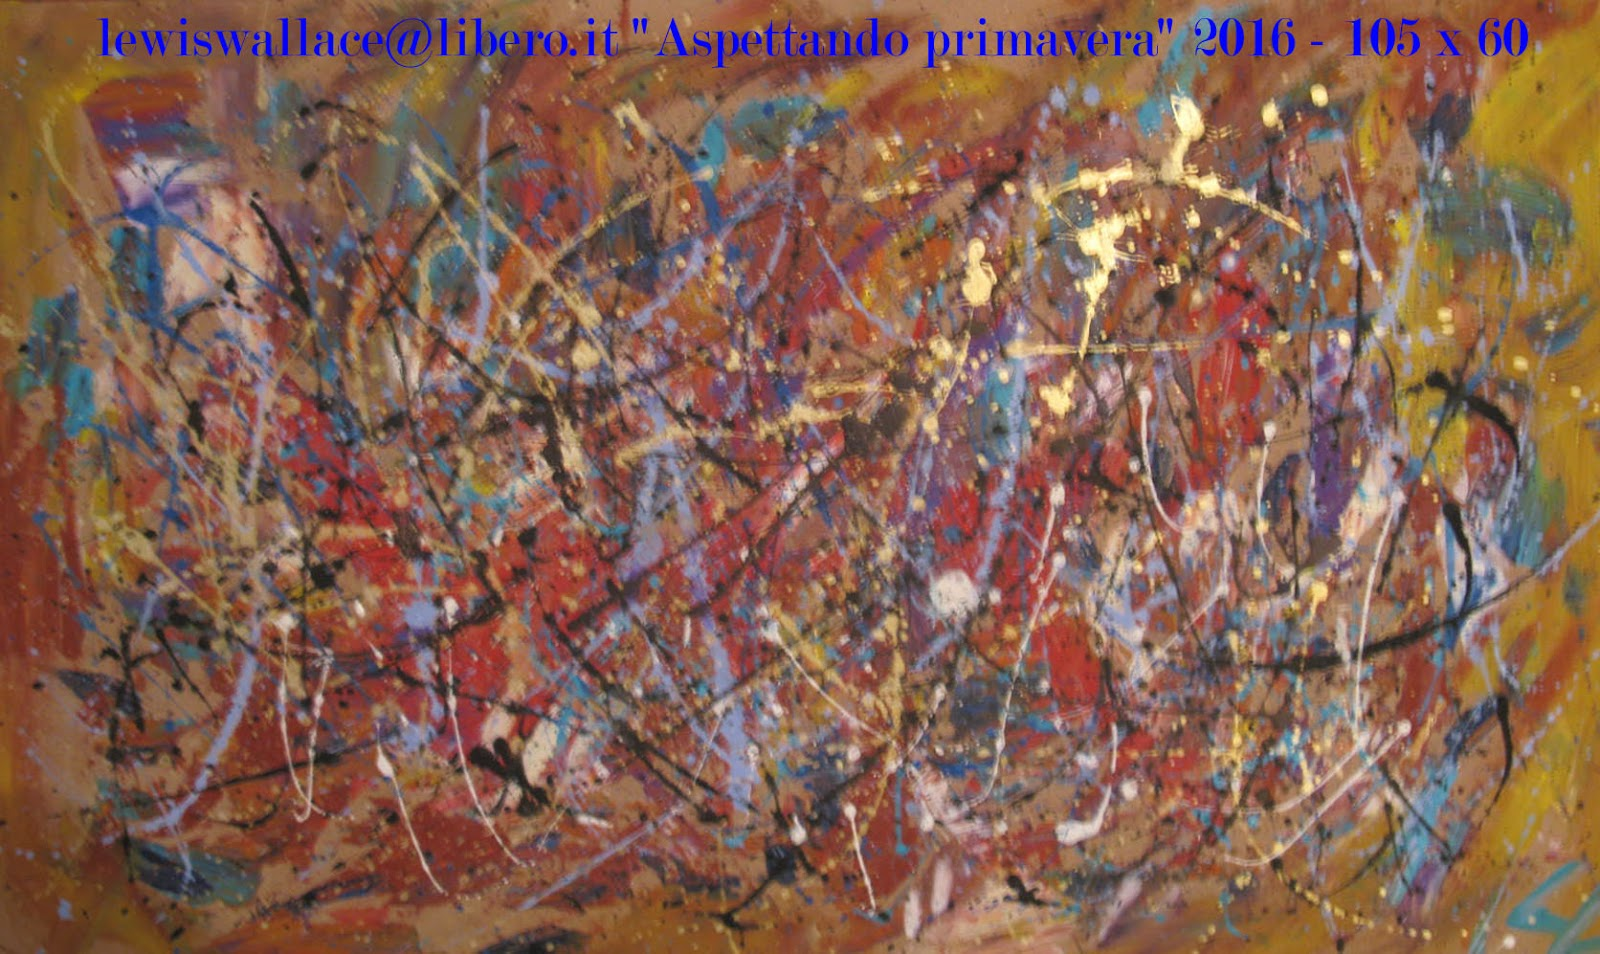 Pittura Informale Italiana Comprare Quadri Buy Original Paintings Comprare Arte